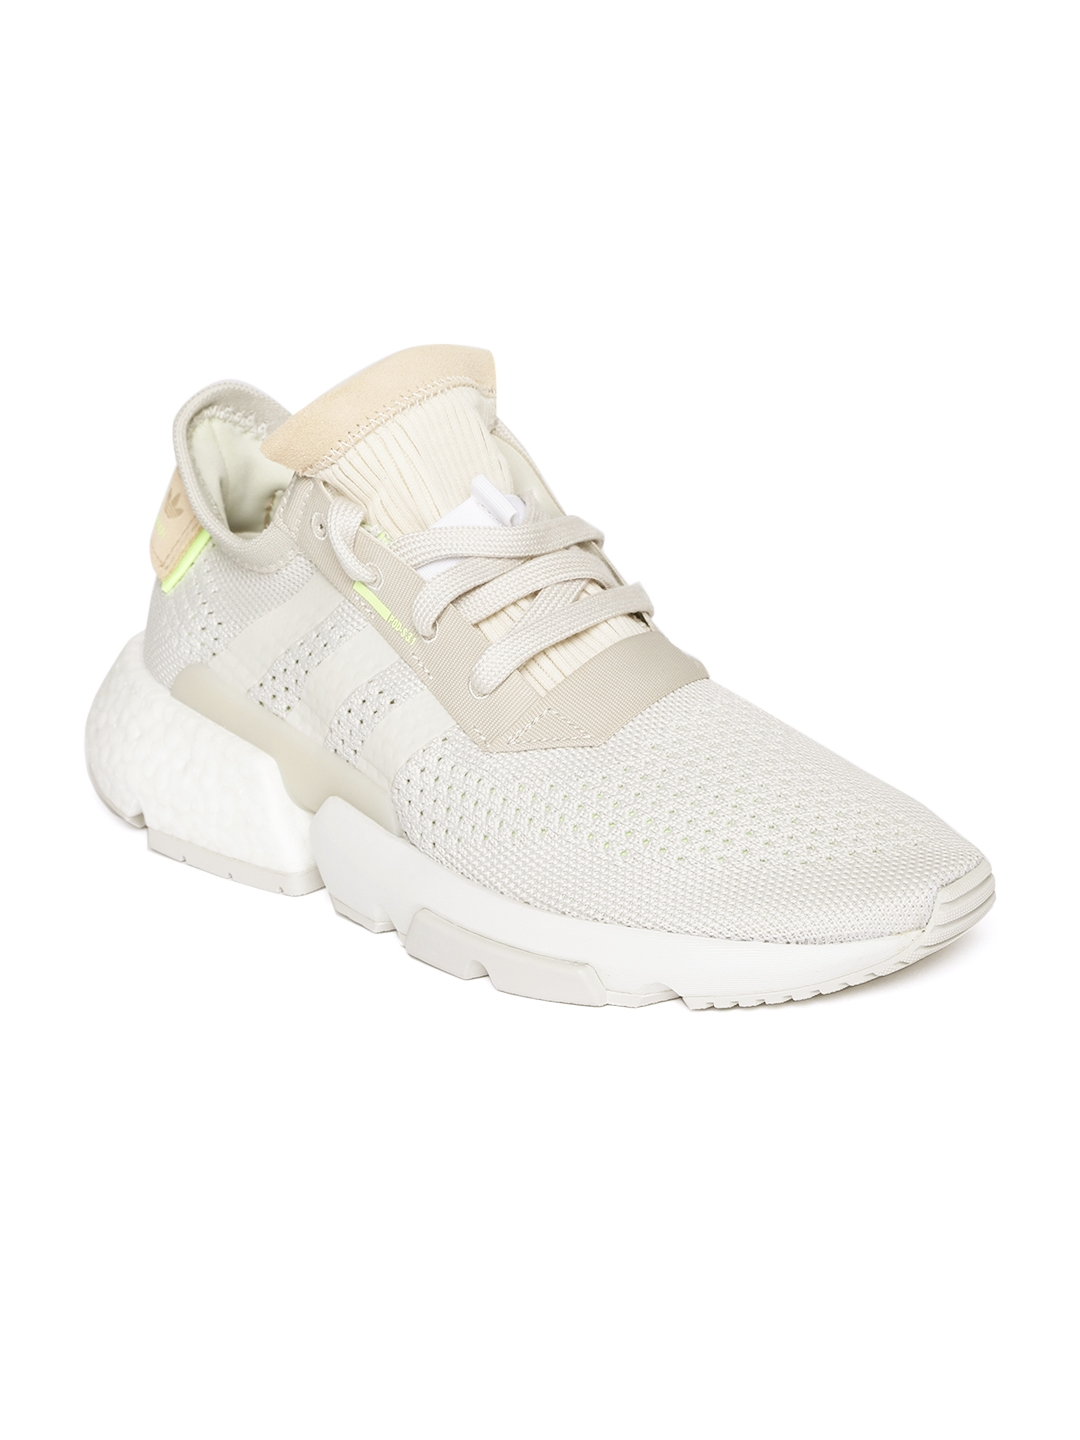 78c5aab7b Buy ADIDAS Originals Women Off White Pod S3.1 Sneakers - Casual ...